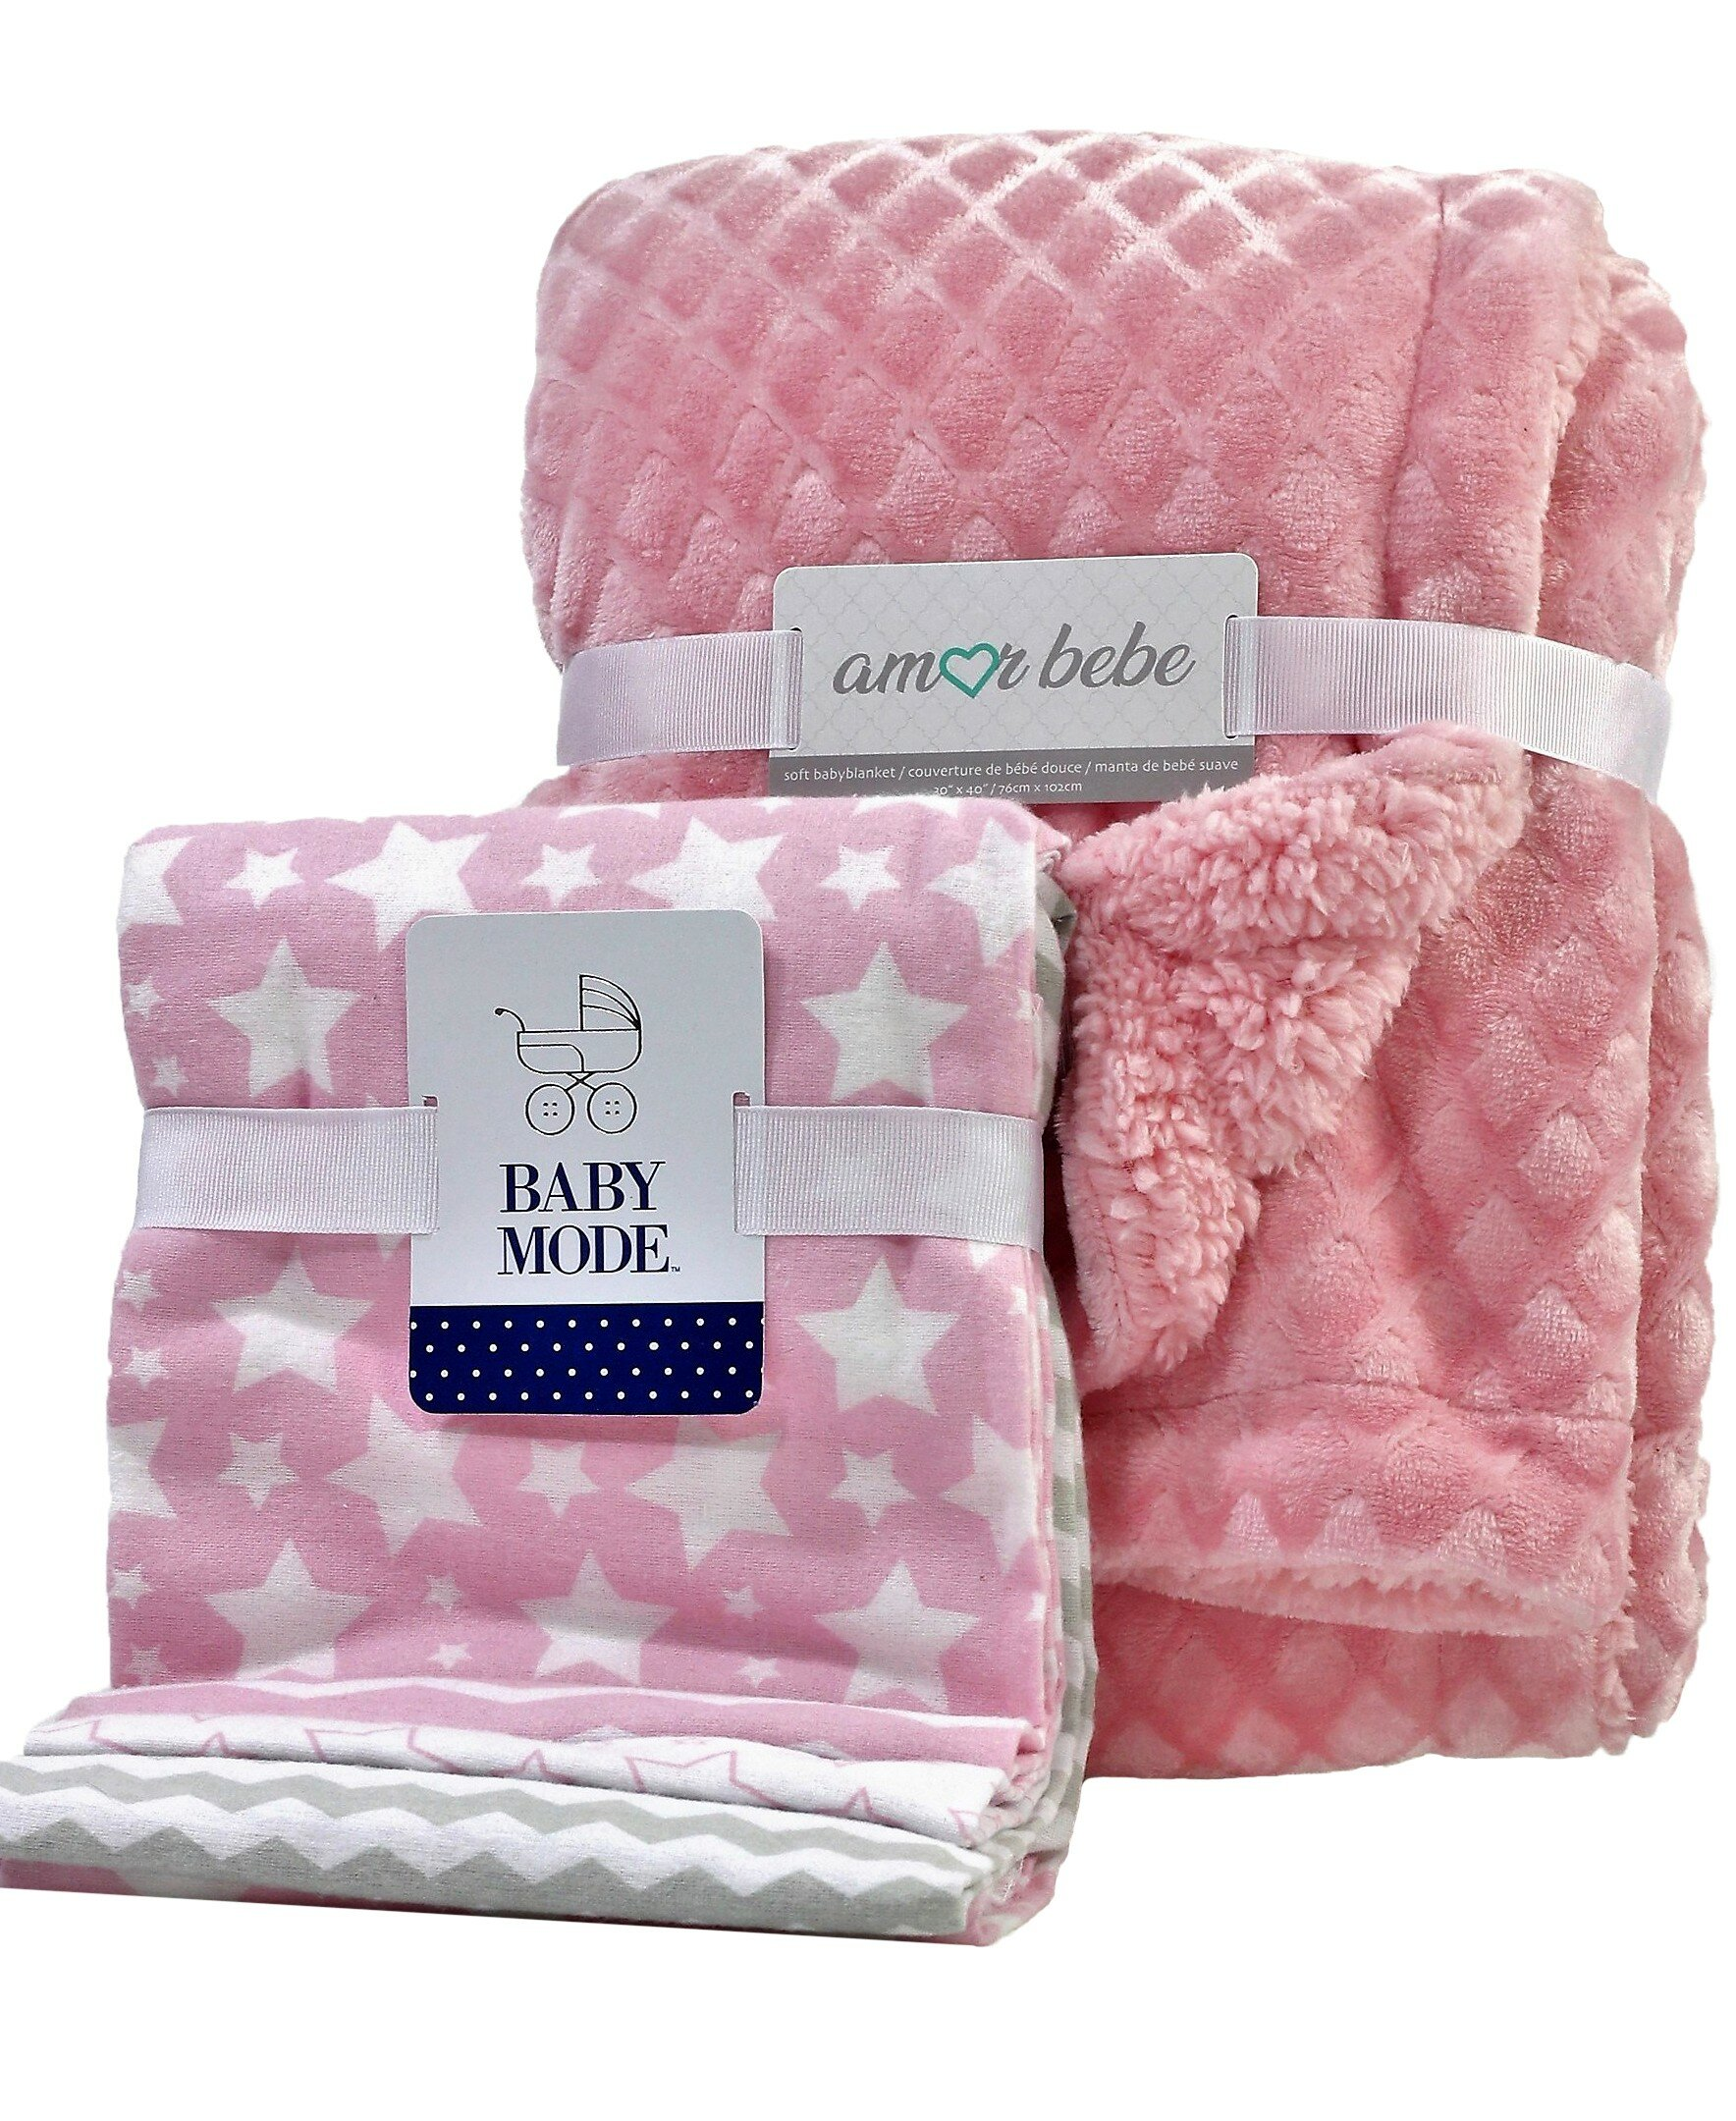 5 Piece Flannel Receiving Blanket Set 30 x 30 Soft Lightweight Warm /& Comfortable